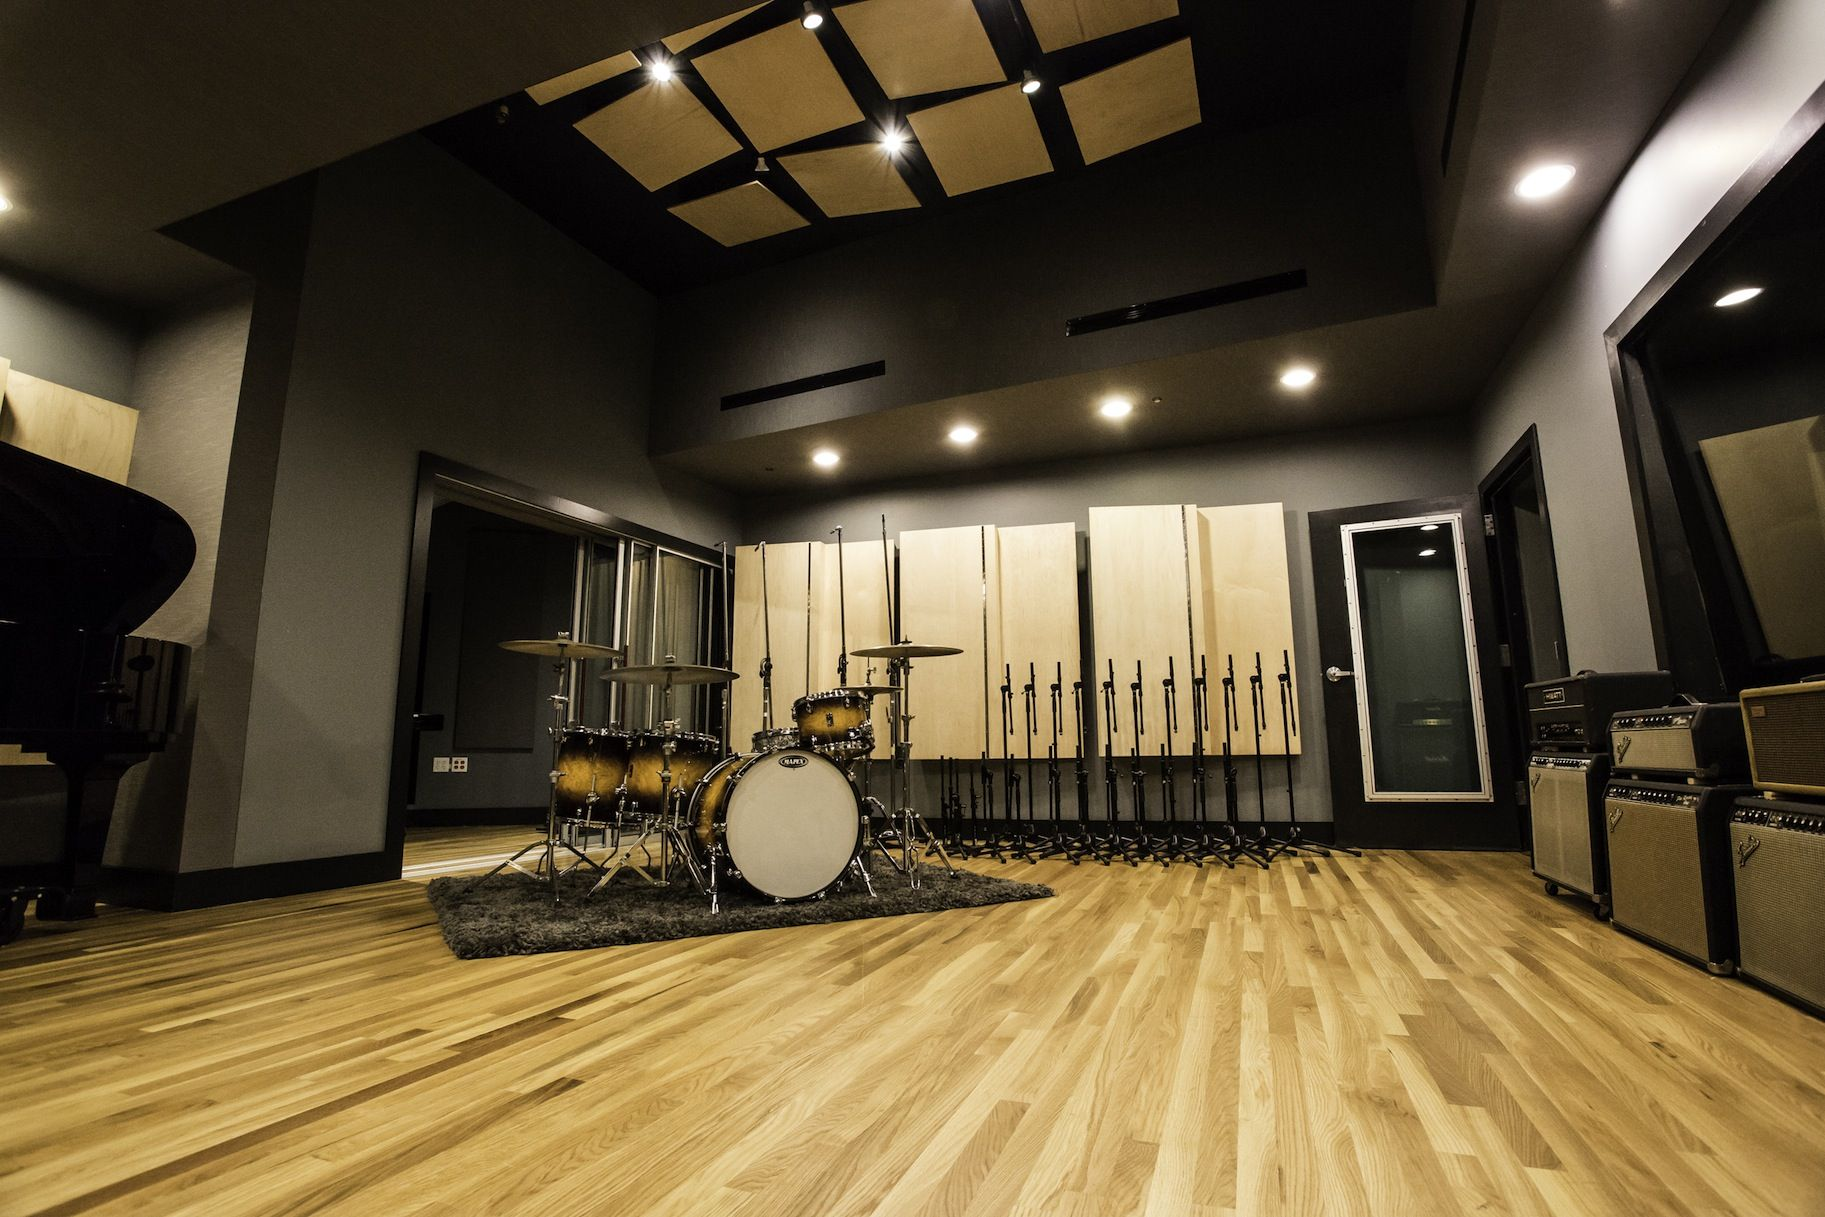 Enjoyable 17 Best Images About Backyard Music Studio On Pinterest Largest Home Design Picture Inspirations Pitcheantrous